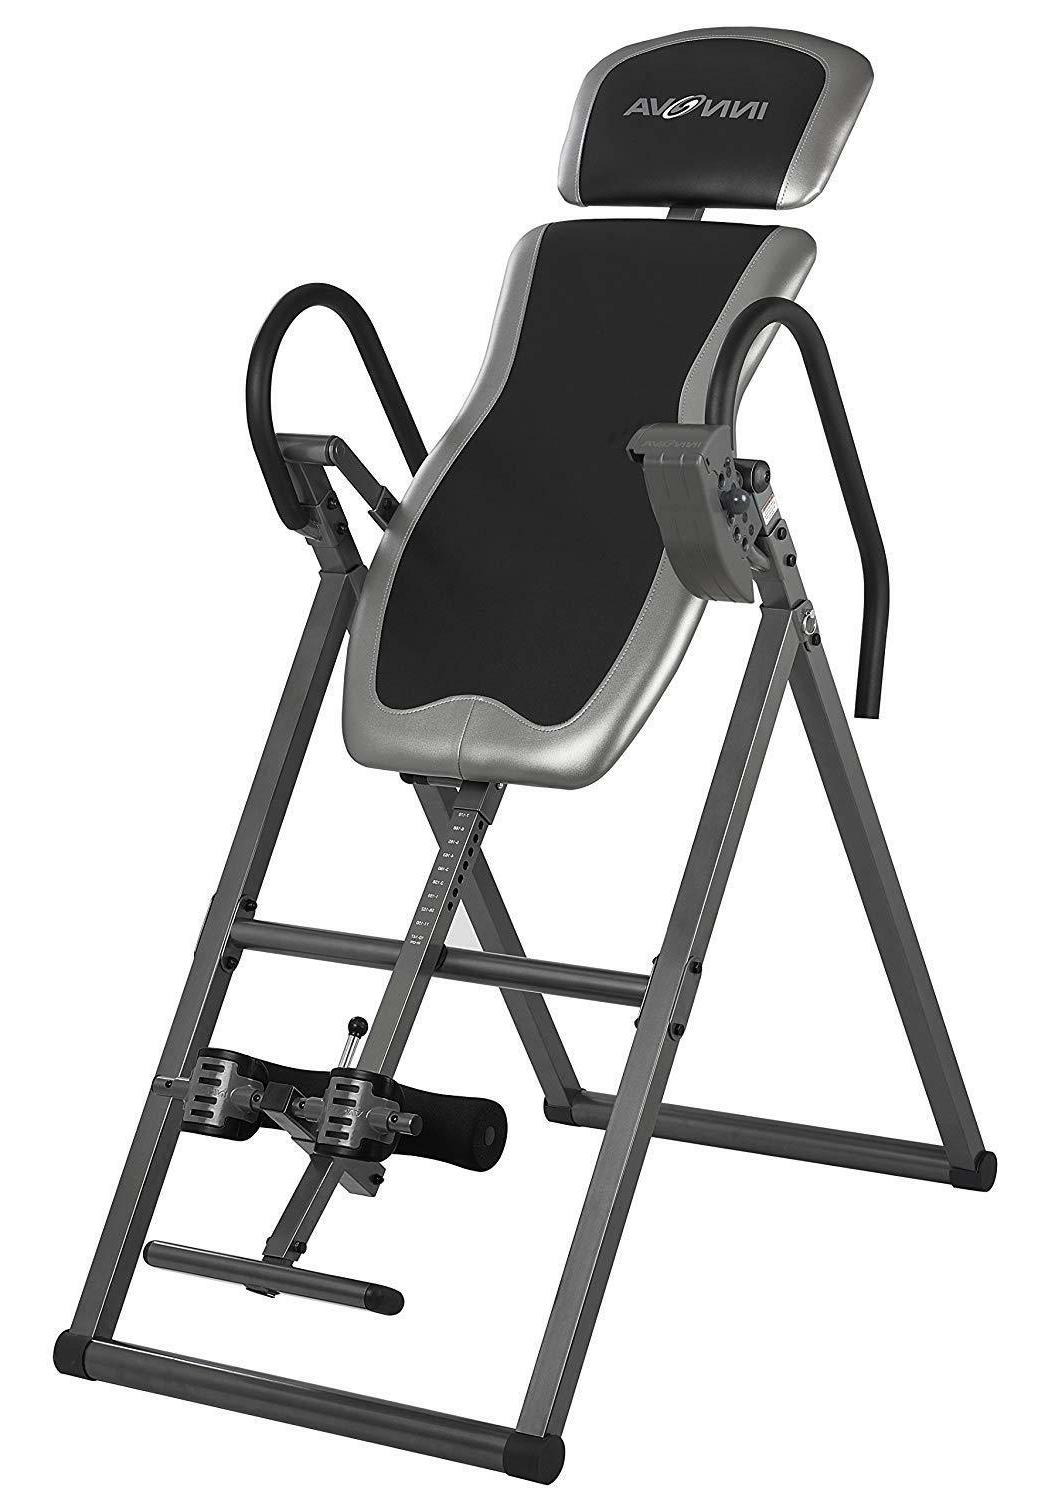 heavy duty inversion table with adjustable headrest